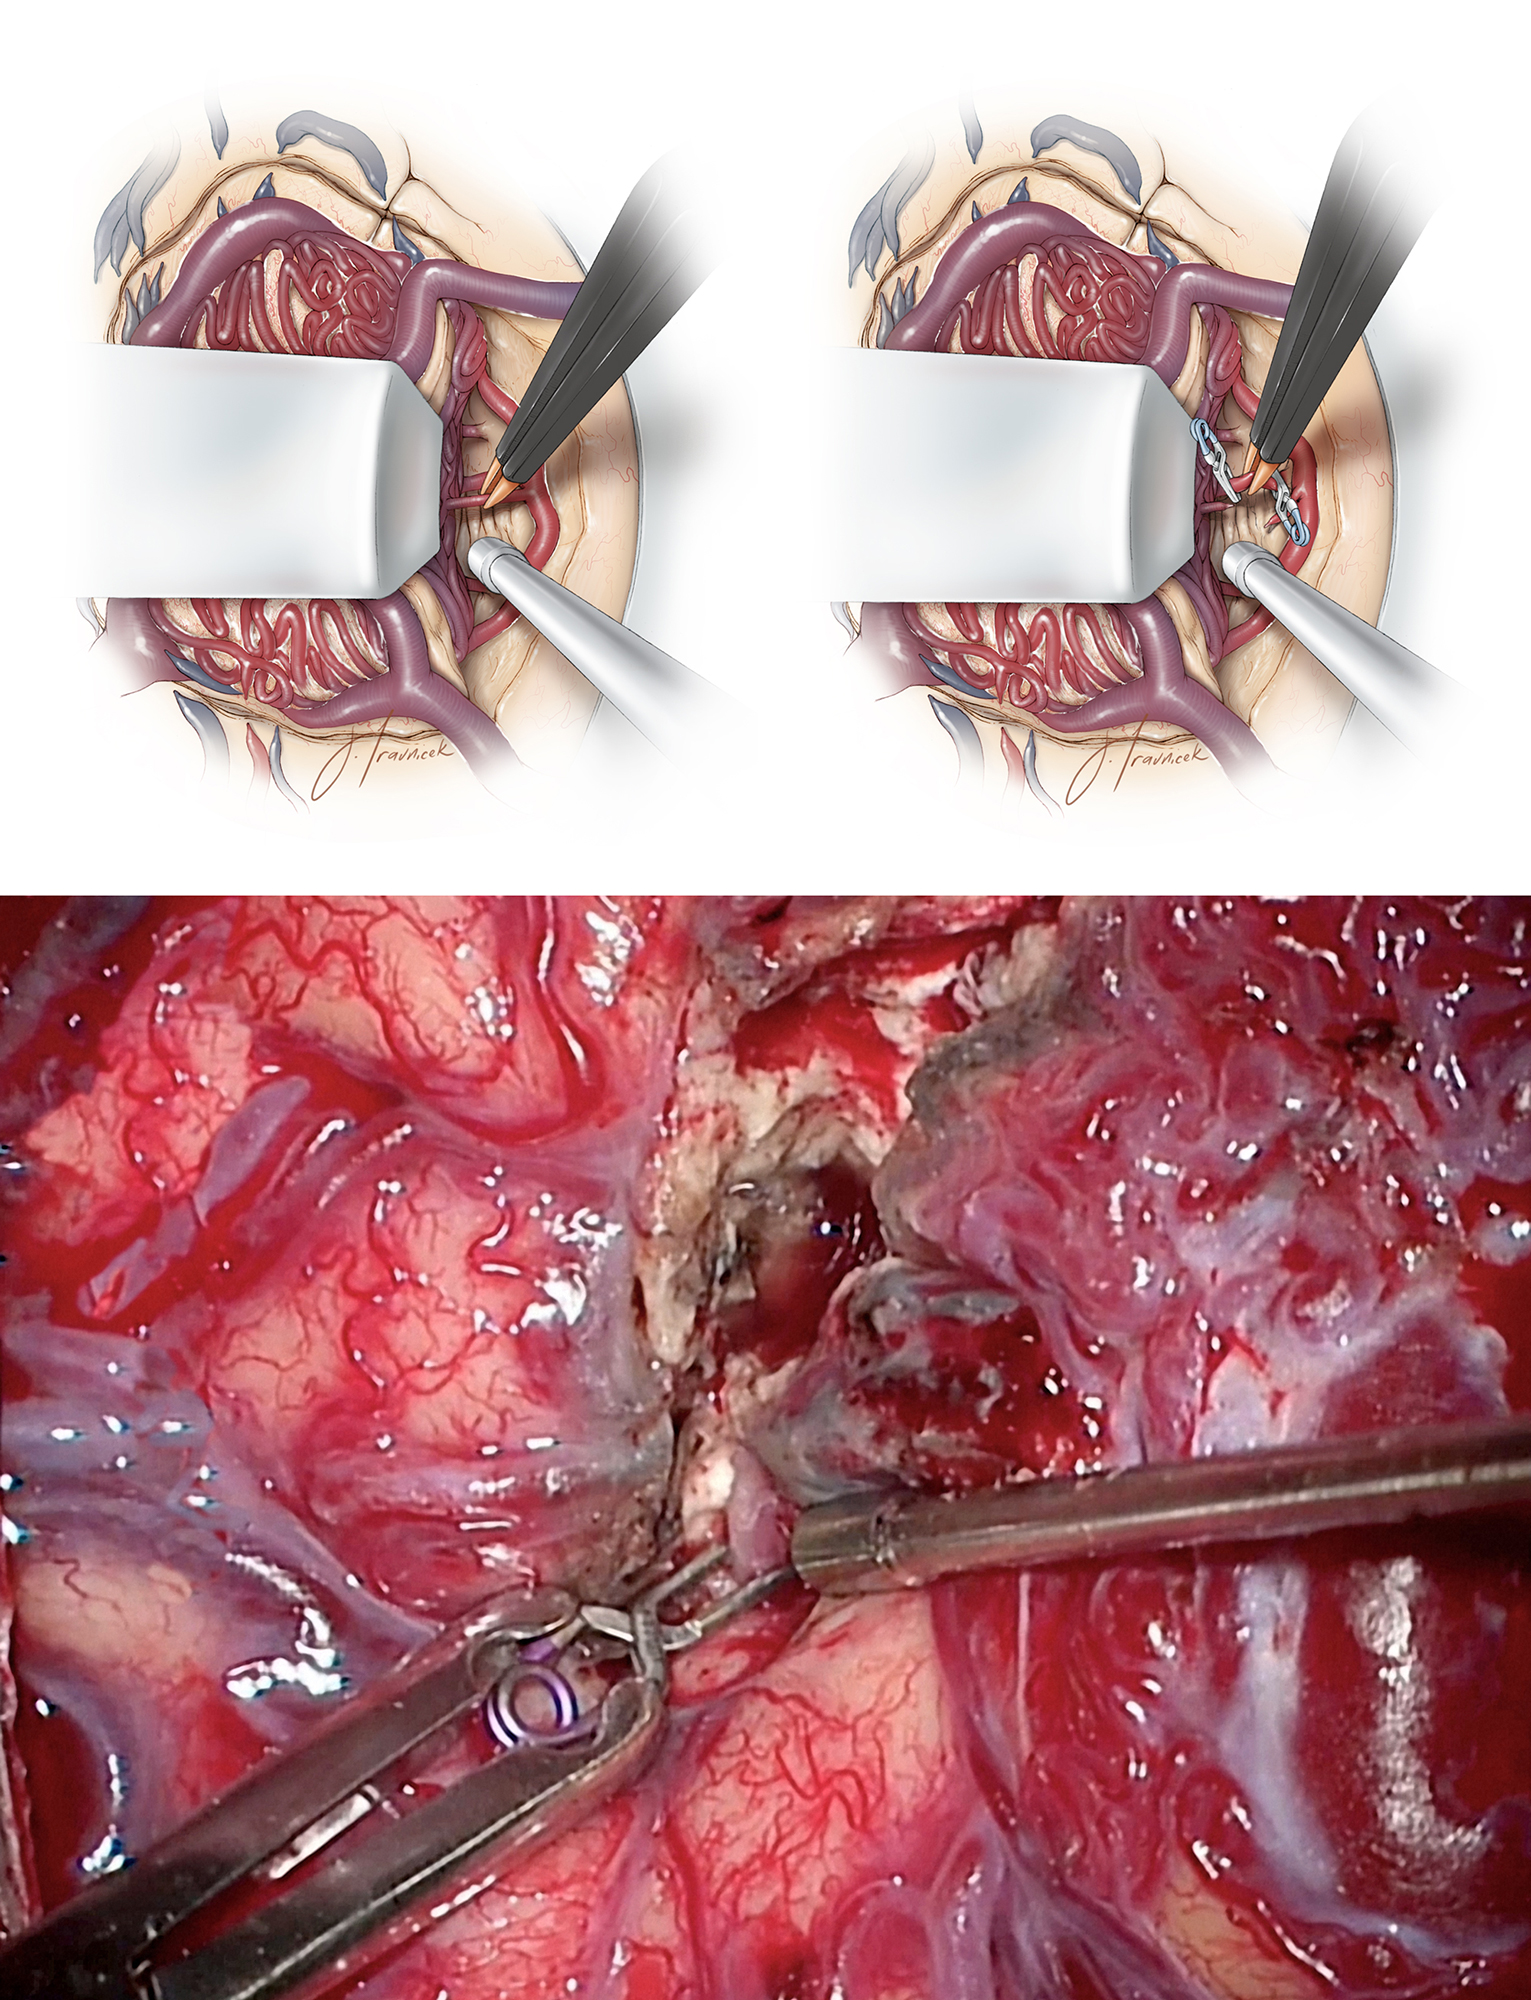 Figure 7: The surgeon should not overzealously sacrifice  en passage  vessels along their cortical and pial surfaces. Microclips are useful to collapse large terminal feeding arteries before their coagulation where they enter the nidus. These large diameter arteries have thickened walls and occasionally may not readily respond to or collapse with bipolar electrocautery alone.